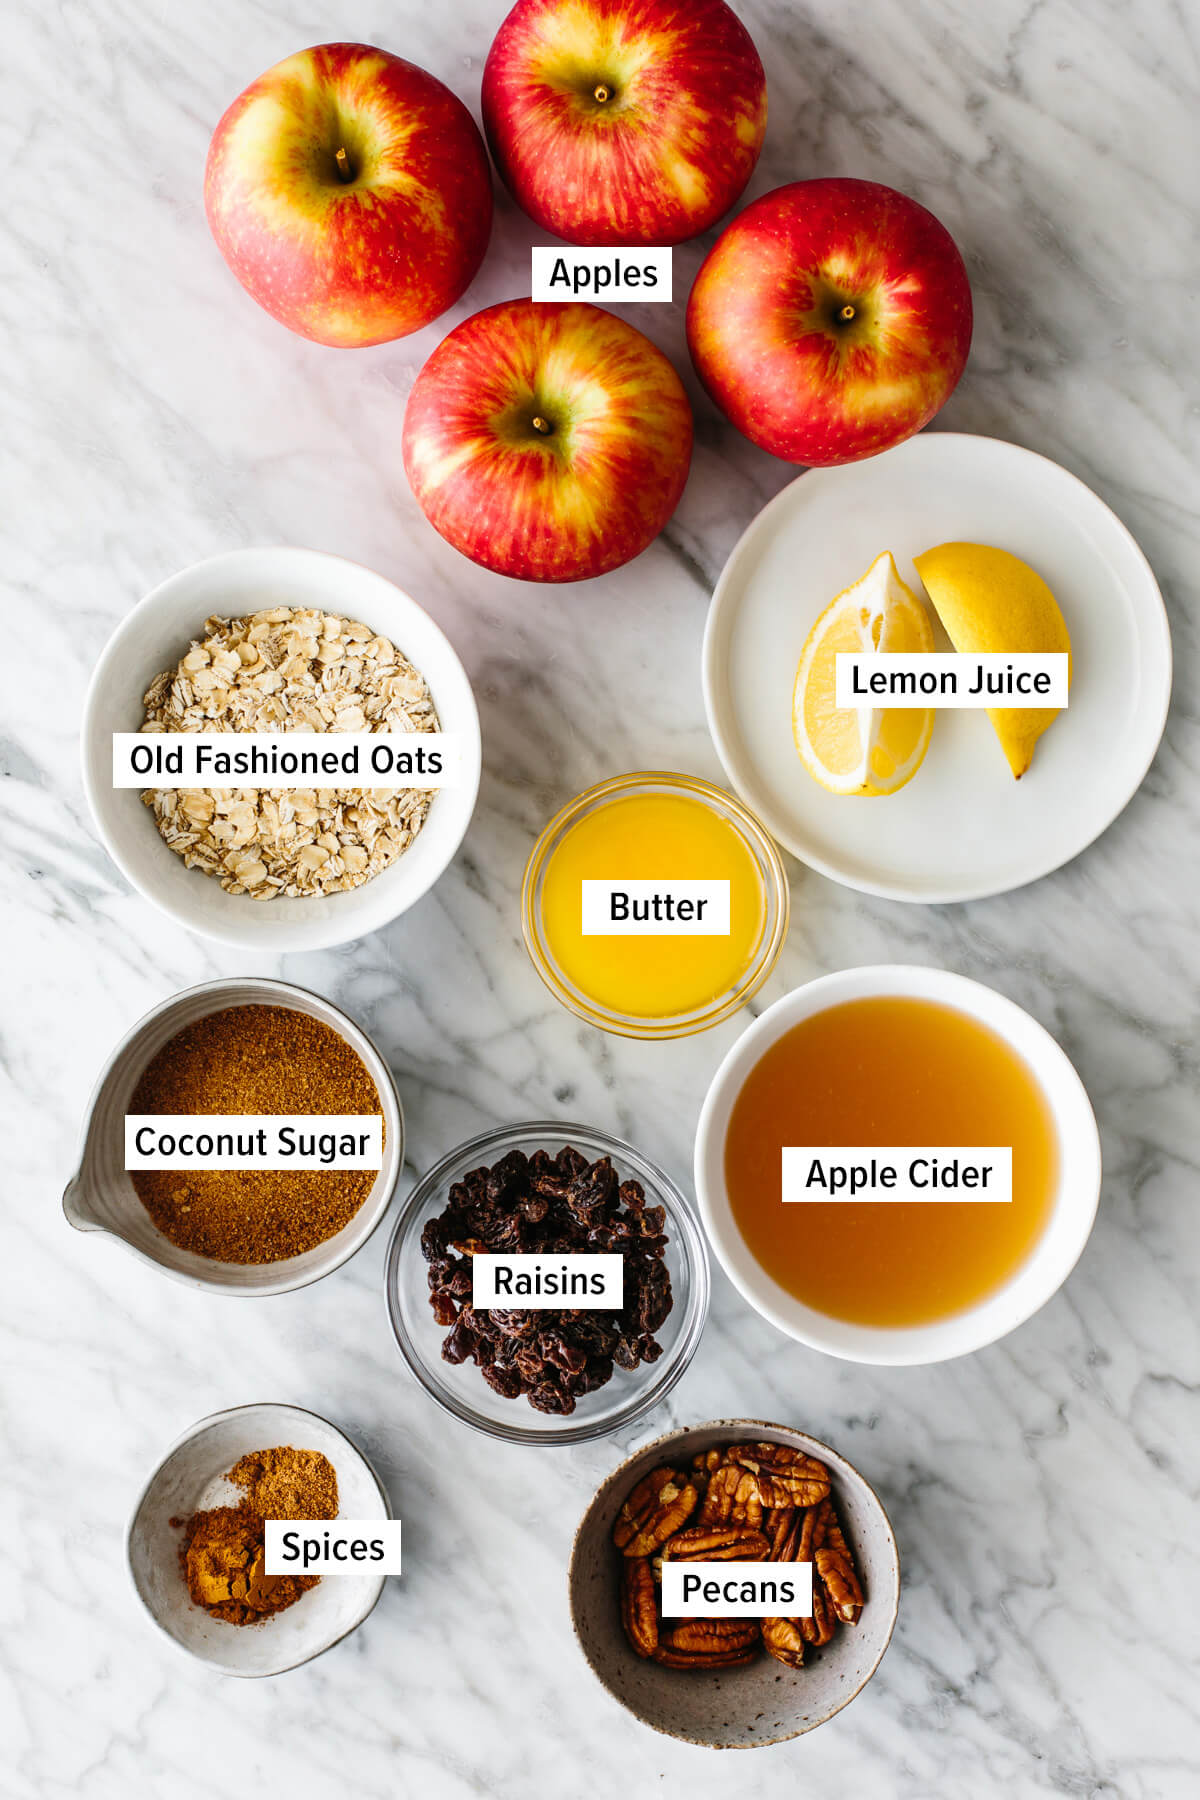 Ingredients for baked apples on a table.